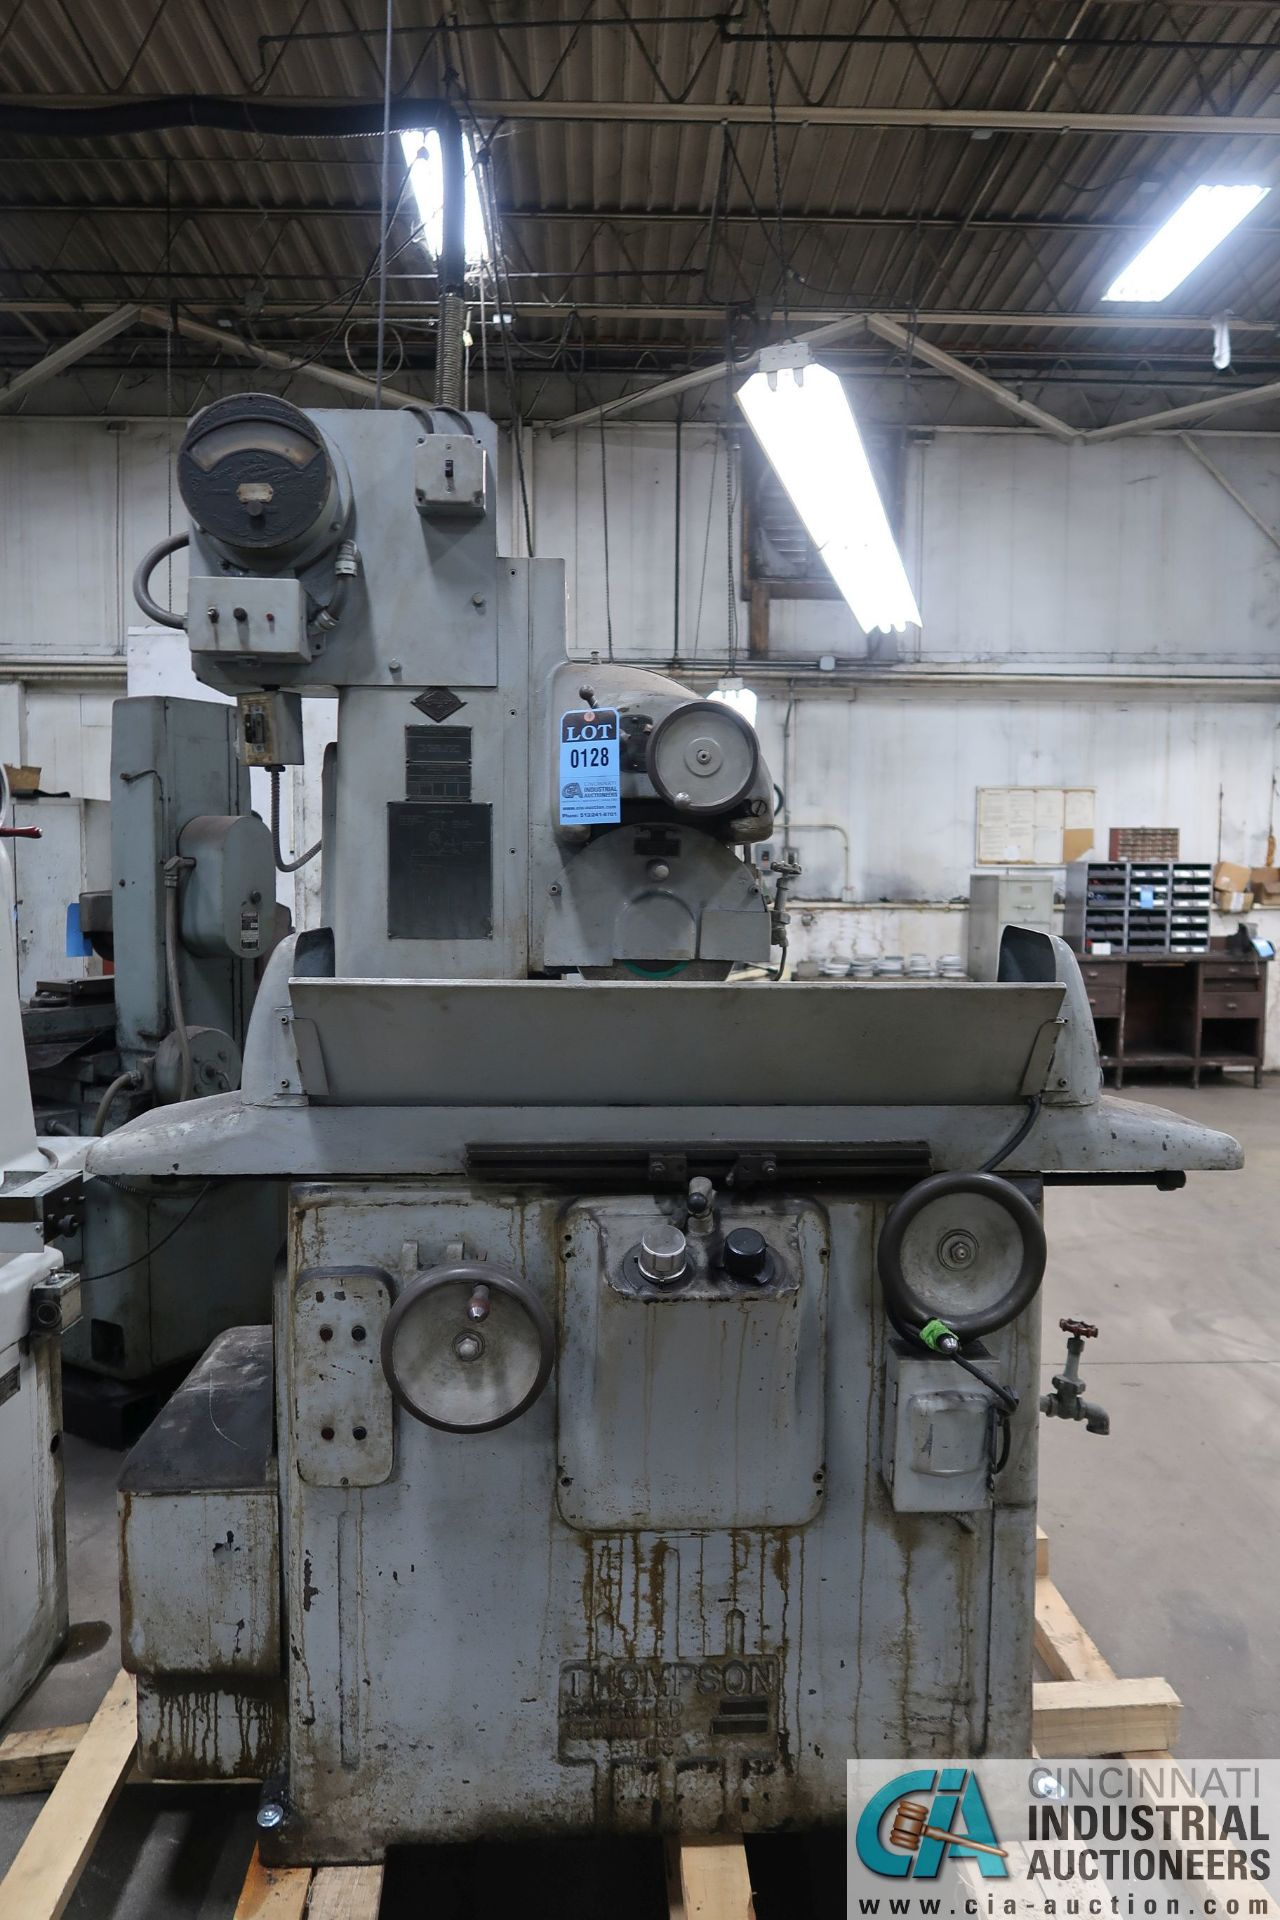 """6"""" X 18"""" THOMPSON HAND FEED SURFACE GRINDER; S/N F46258, 220 VOLTS, 3-PHASE, 1-1/2 HP MOTOR - Image 3 of 10"""